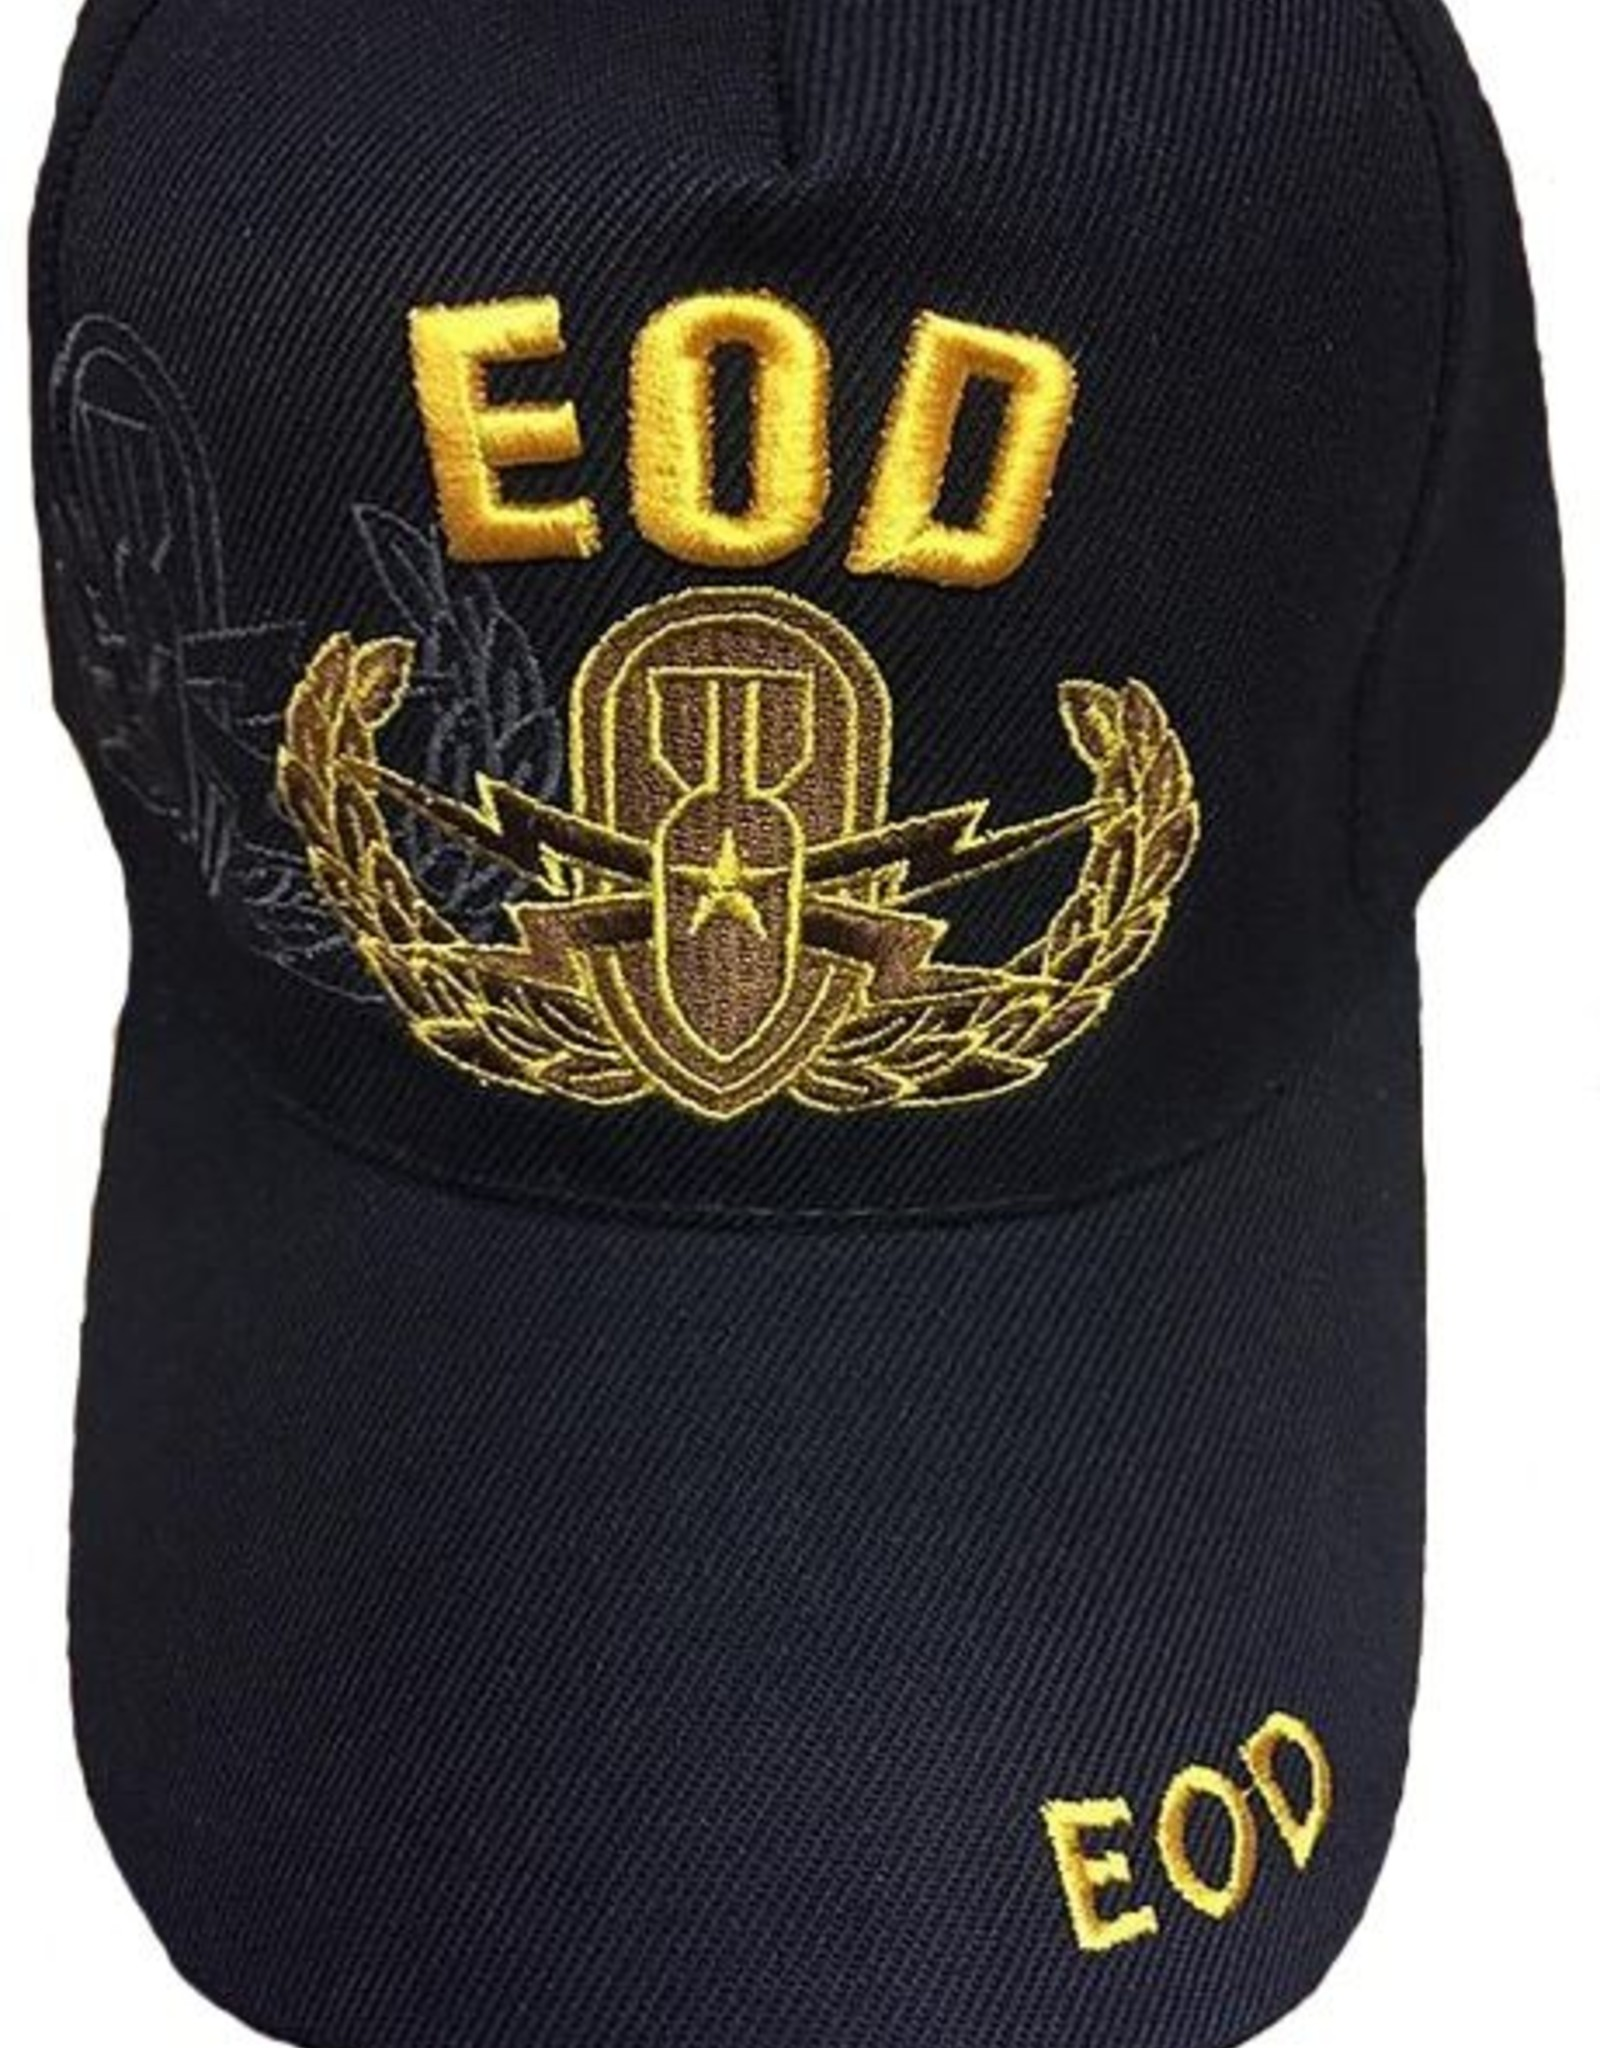 MidMil Army Senior EOD Hat with Emblem and Shadow Black